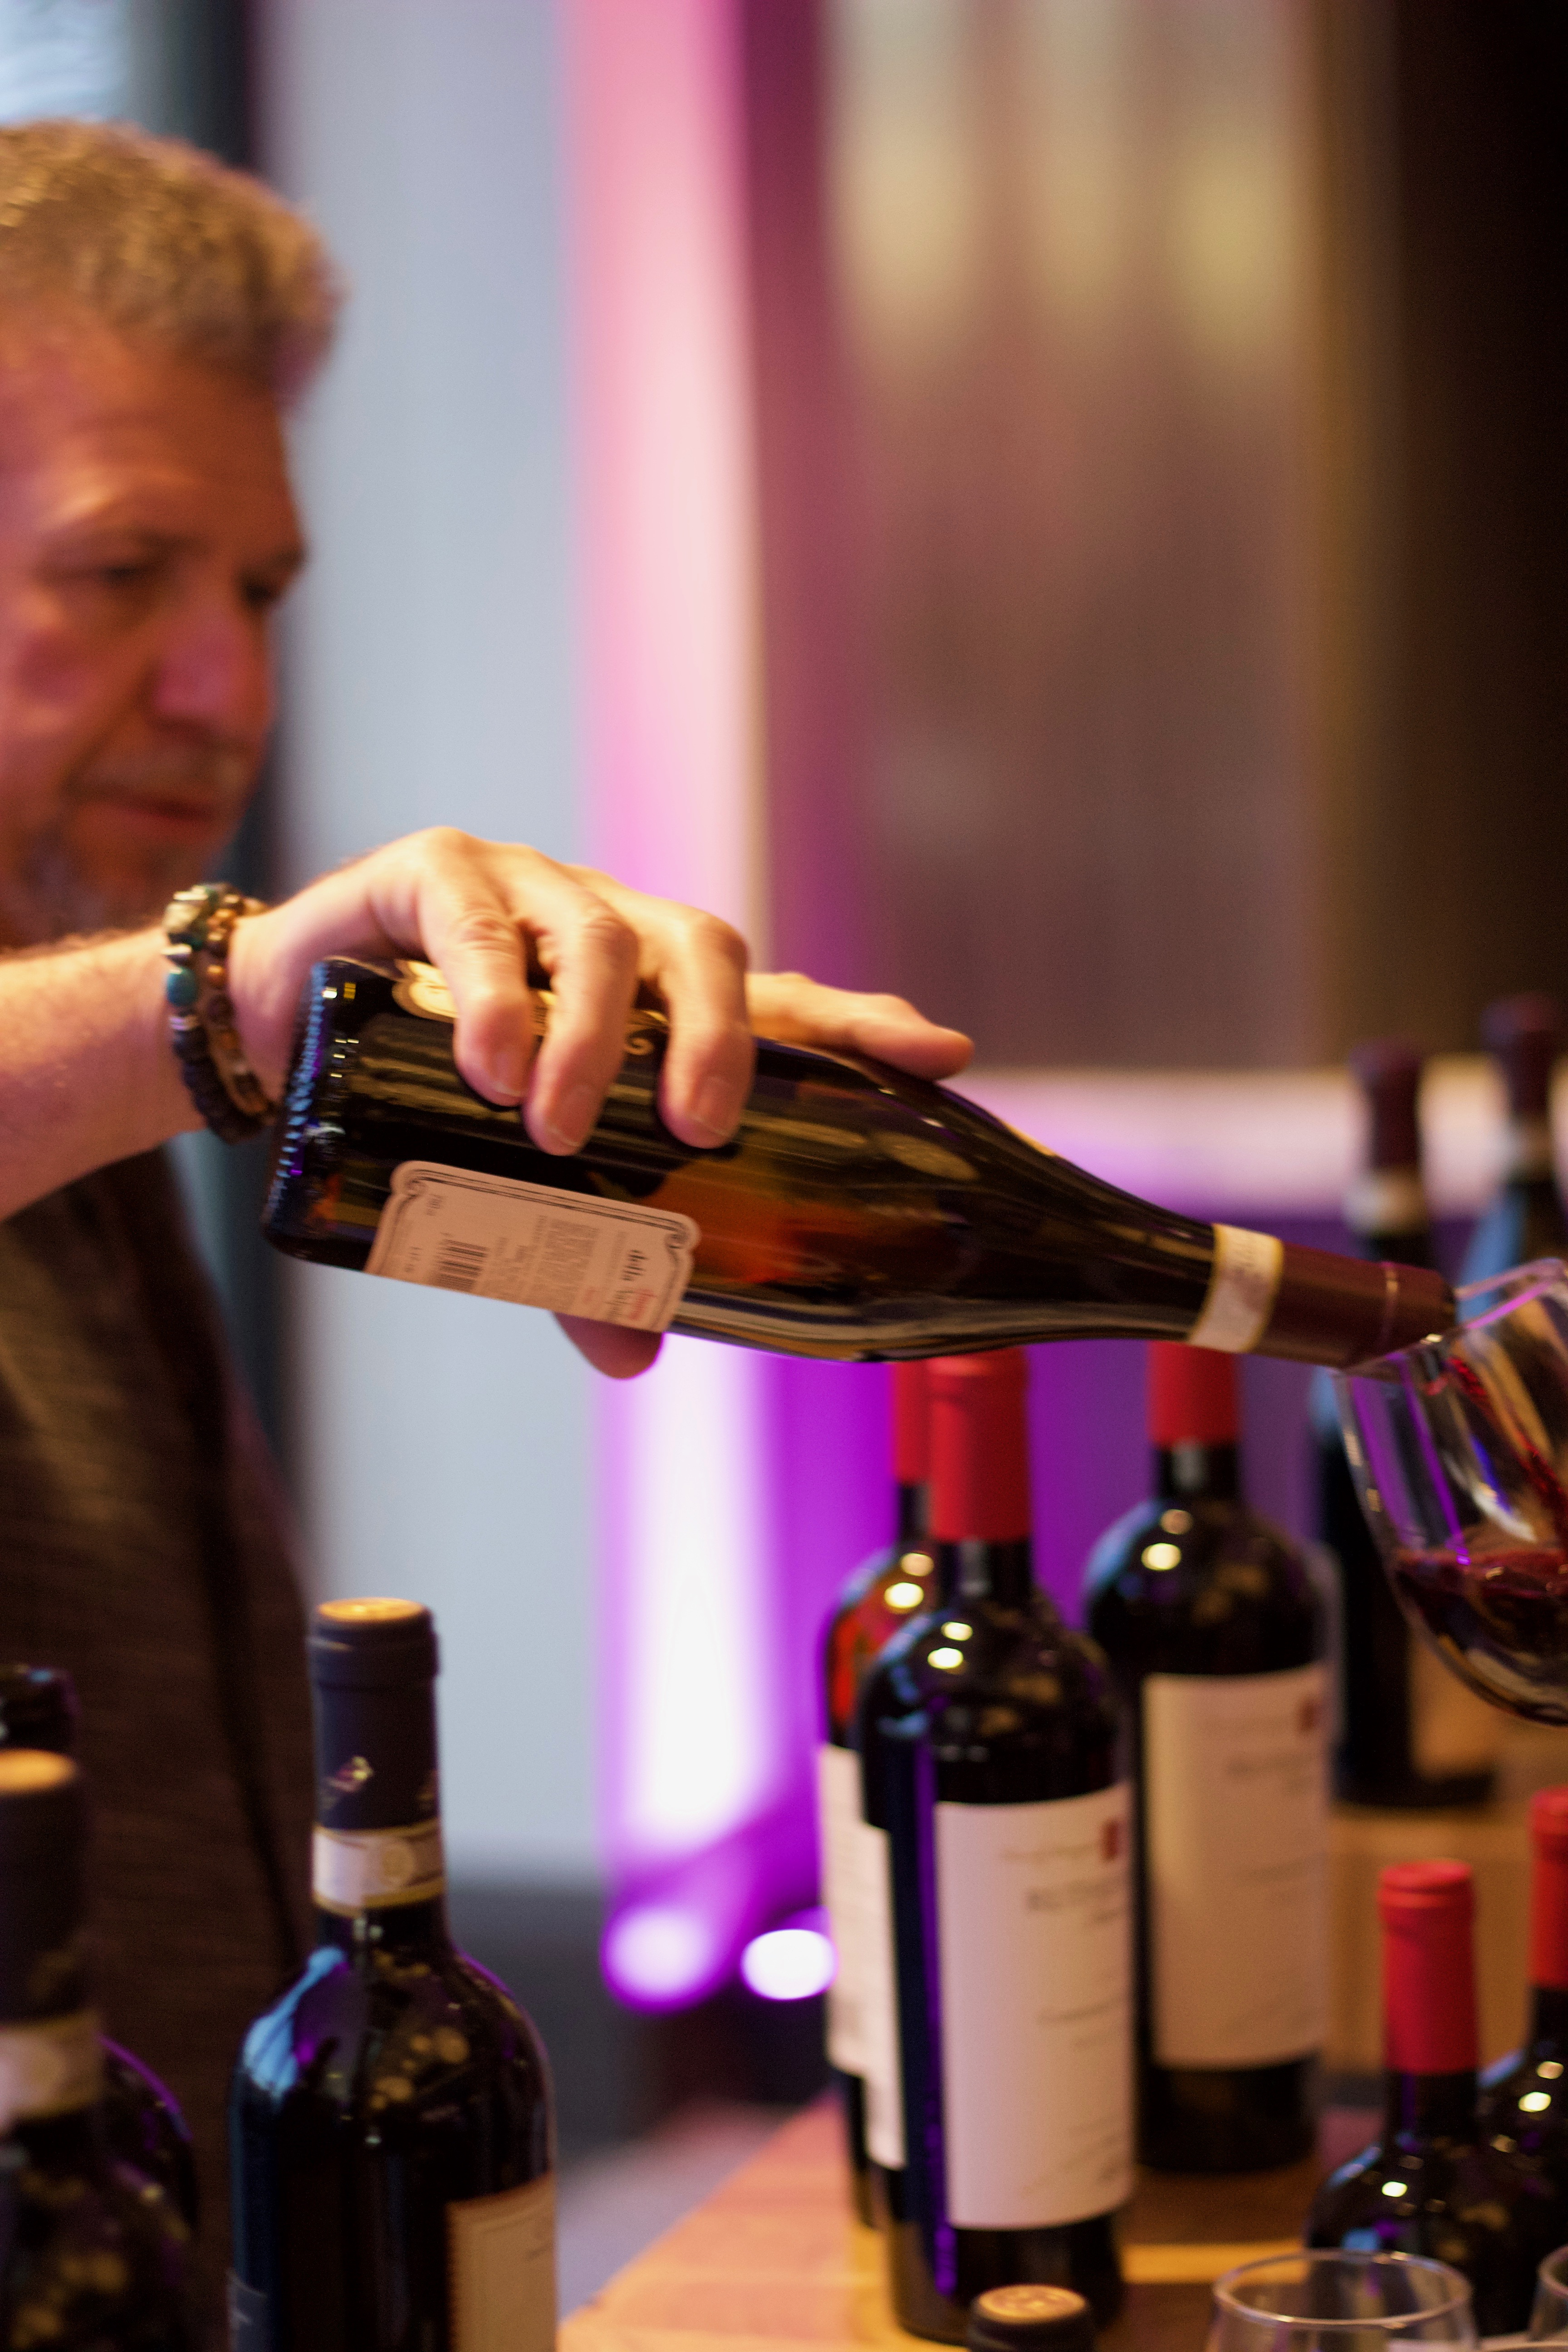 Le Chateau Parc has a great selection of delicious wines